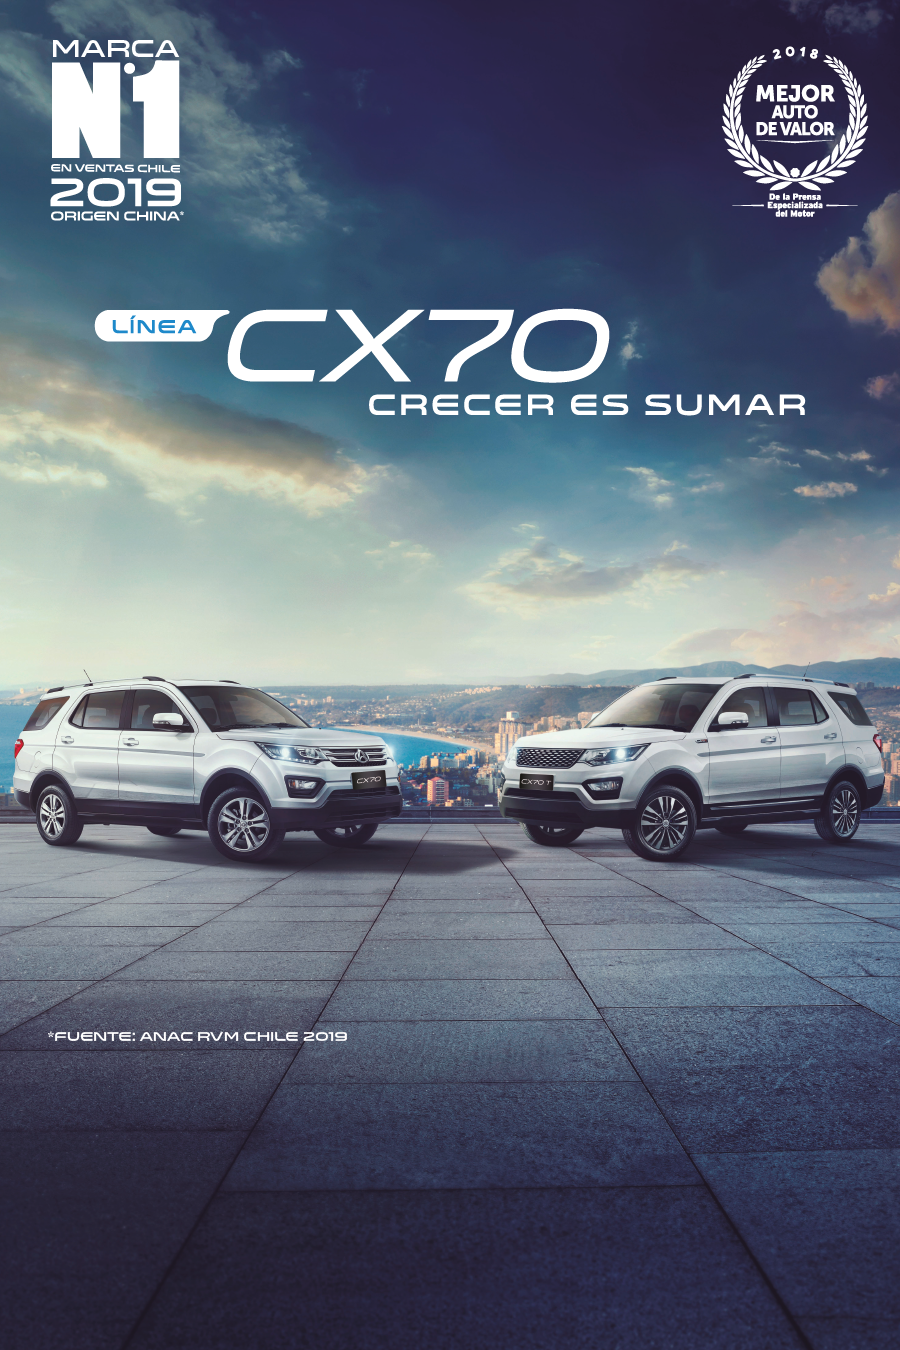 BannerWEB_Changan_900x1350_CX70